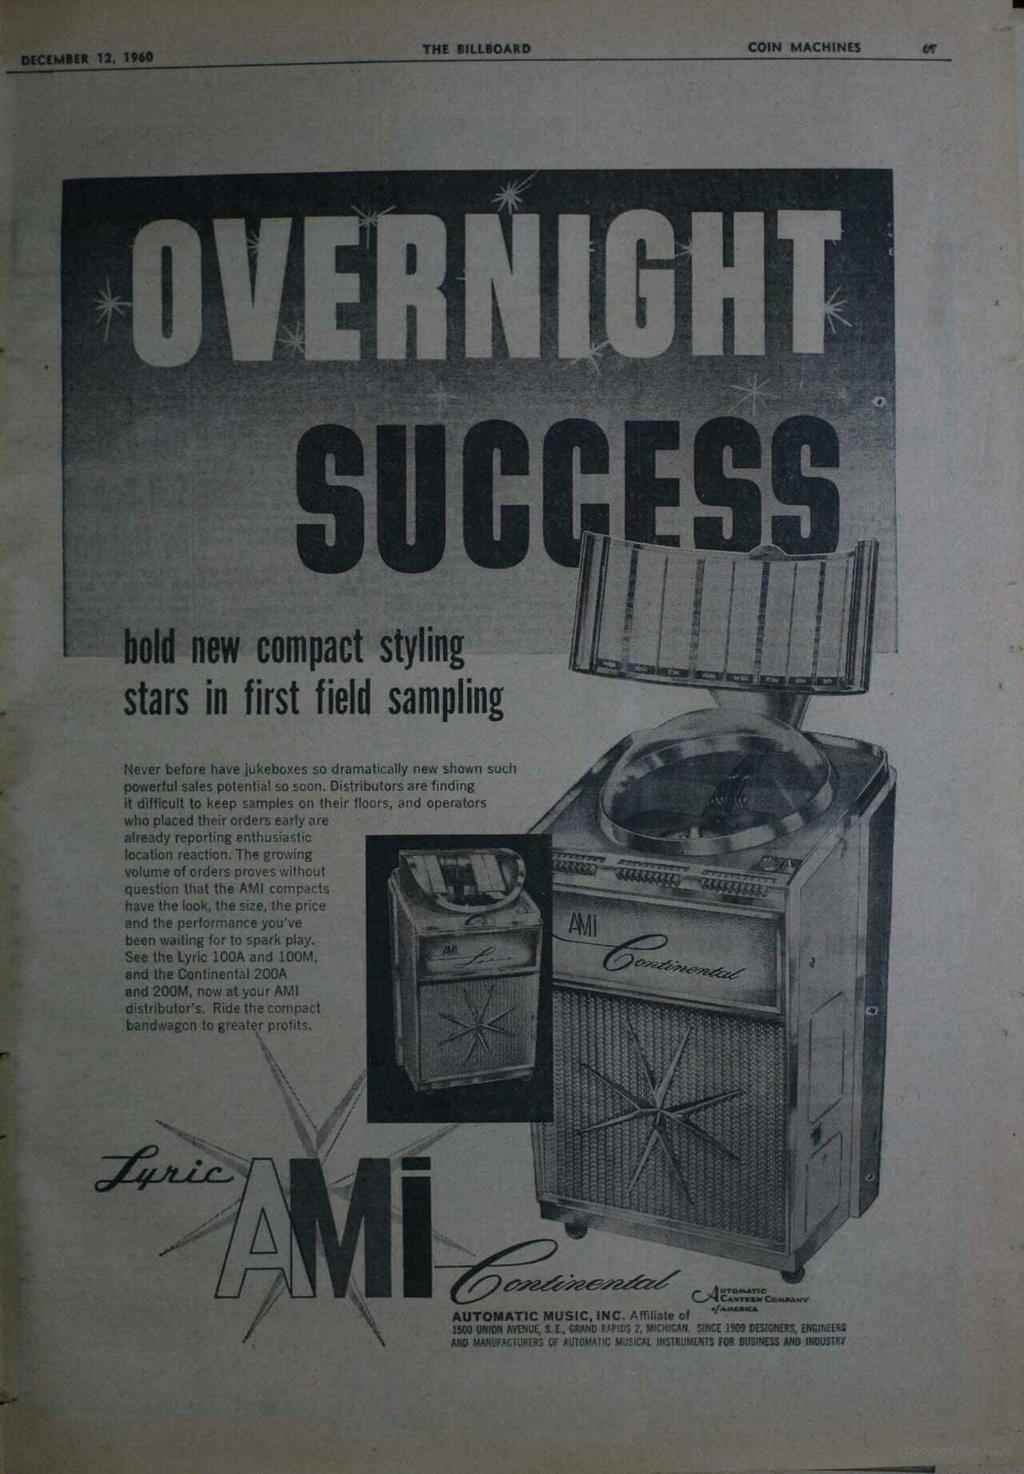 DECEMBER 12, 1960 THE BILLBOARD COIN MACHINES GT bold new compact styling stars in first field sampling Never before have jukeboxes so dramatically new shown such powerful sales potential so soon.